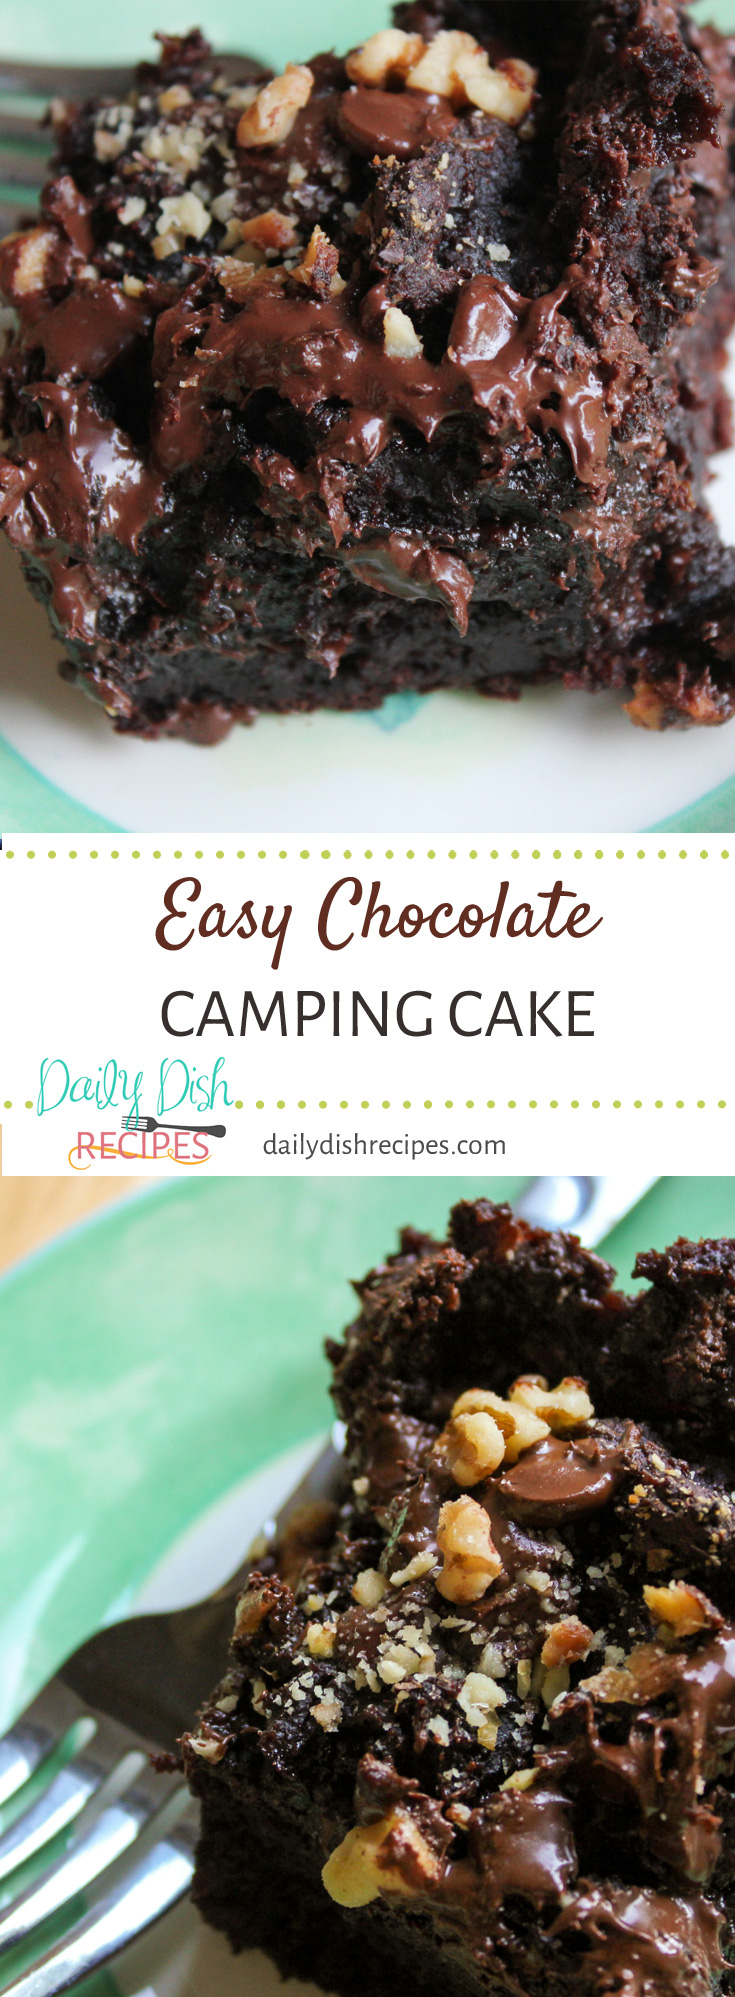 This Easy Chocolate Camping Cake is delicious and ridiculously simple to make. Whip one up today and dig your fork into a wonderfully moist, chocolaty cake in under 45 minutes!